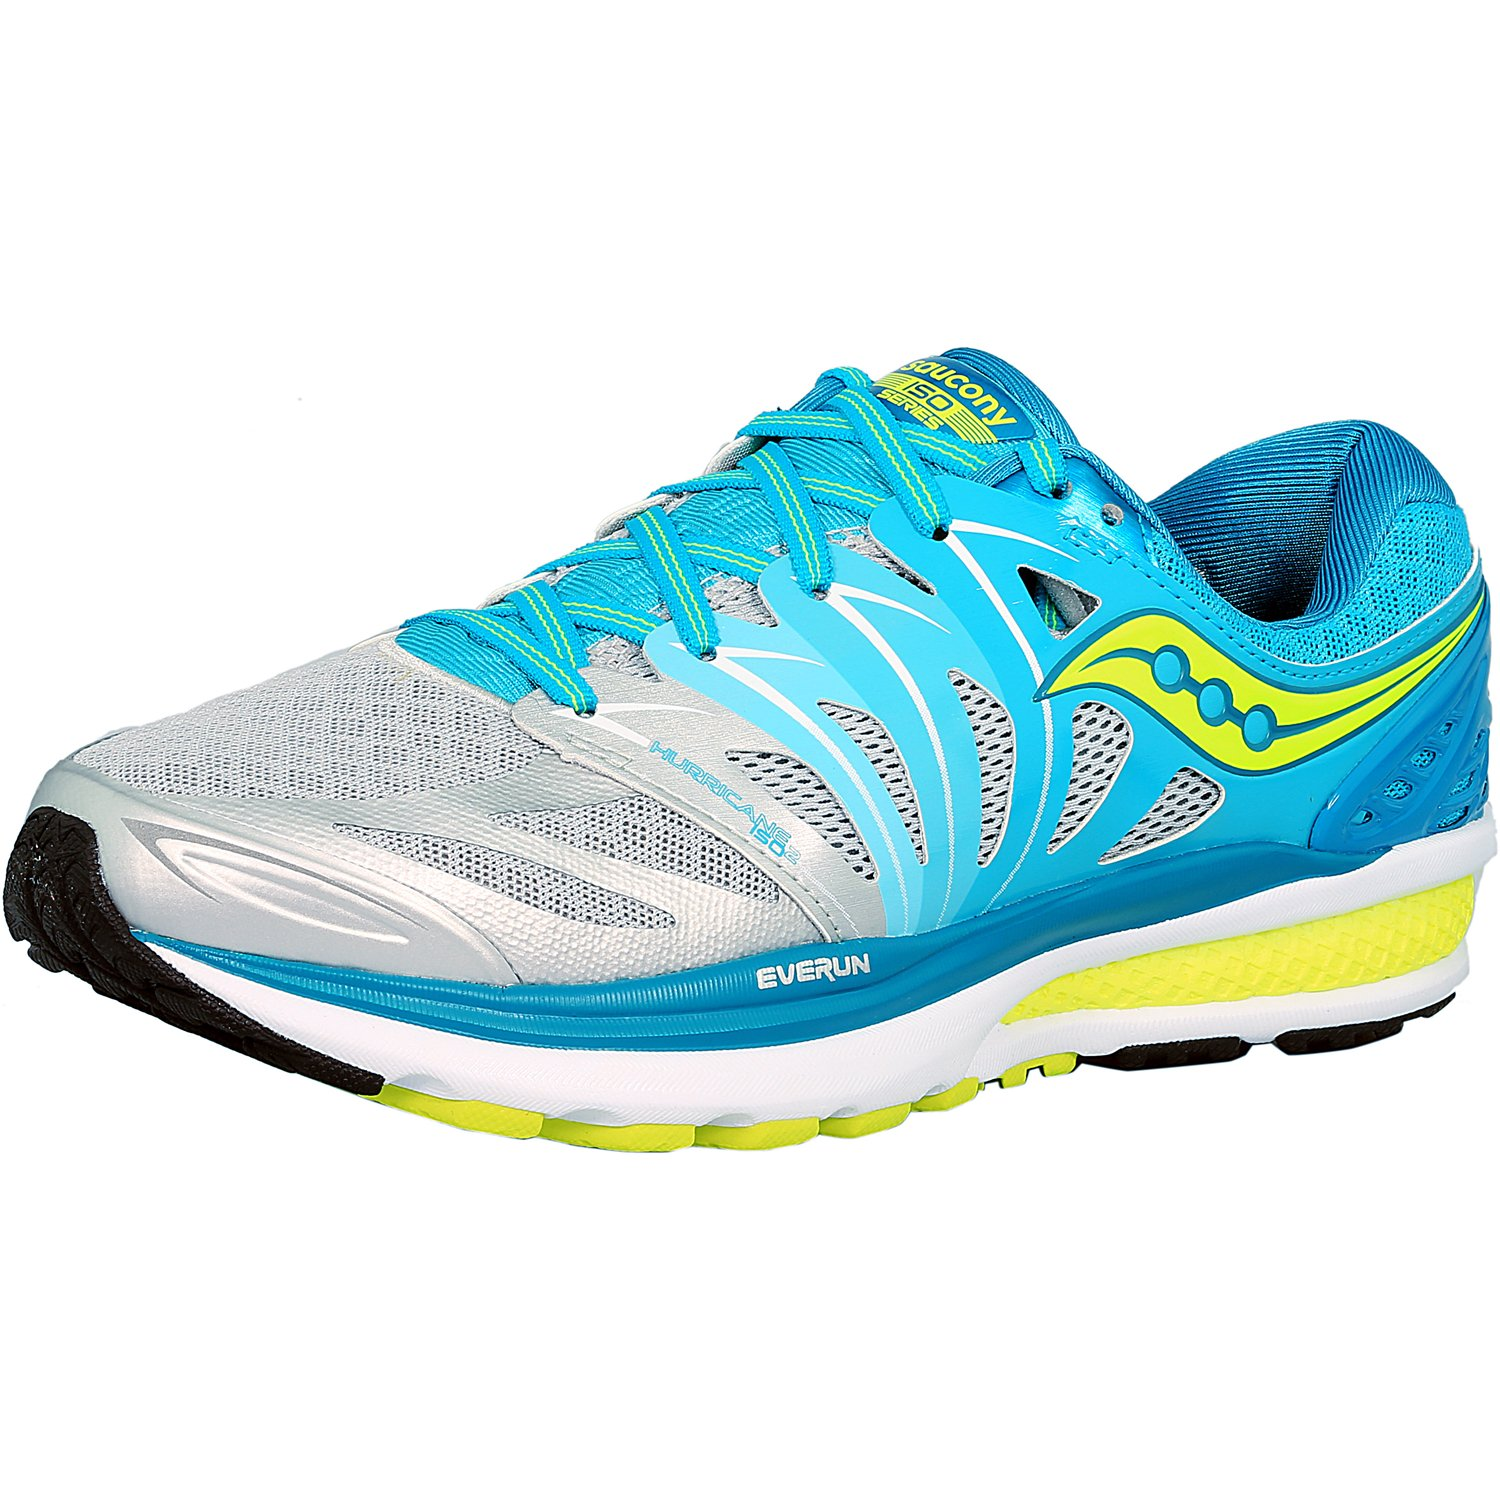 Saucony Women's Hurricane Iso 2 Blue Silver Citron Ankle-High Running Shoe 7W by Saucony